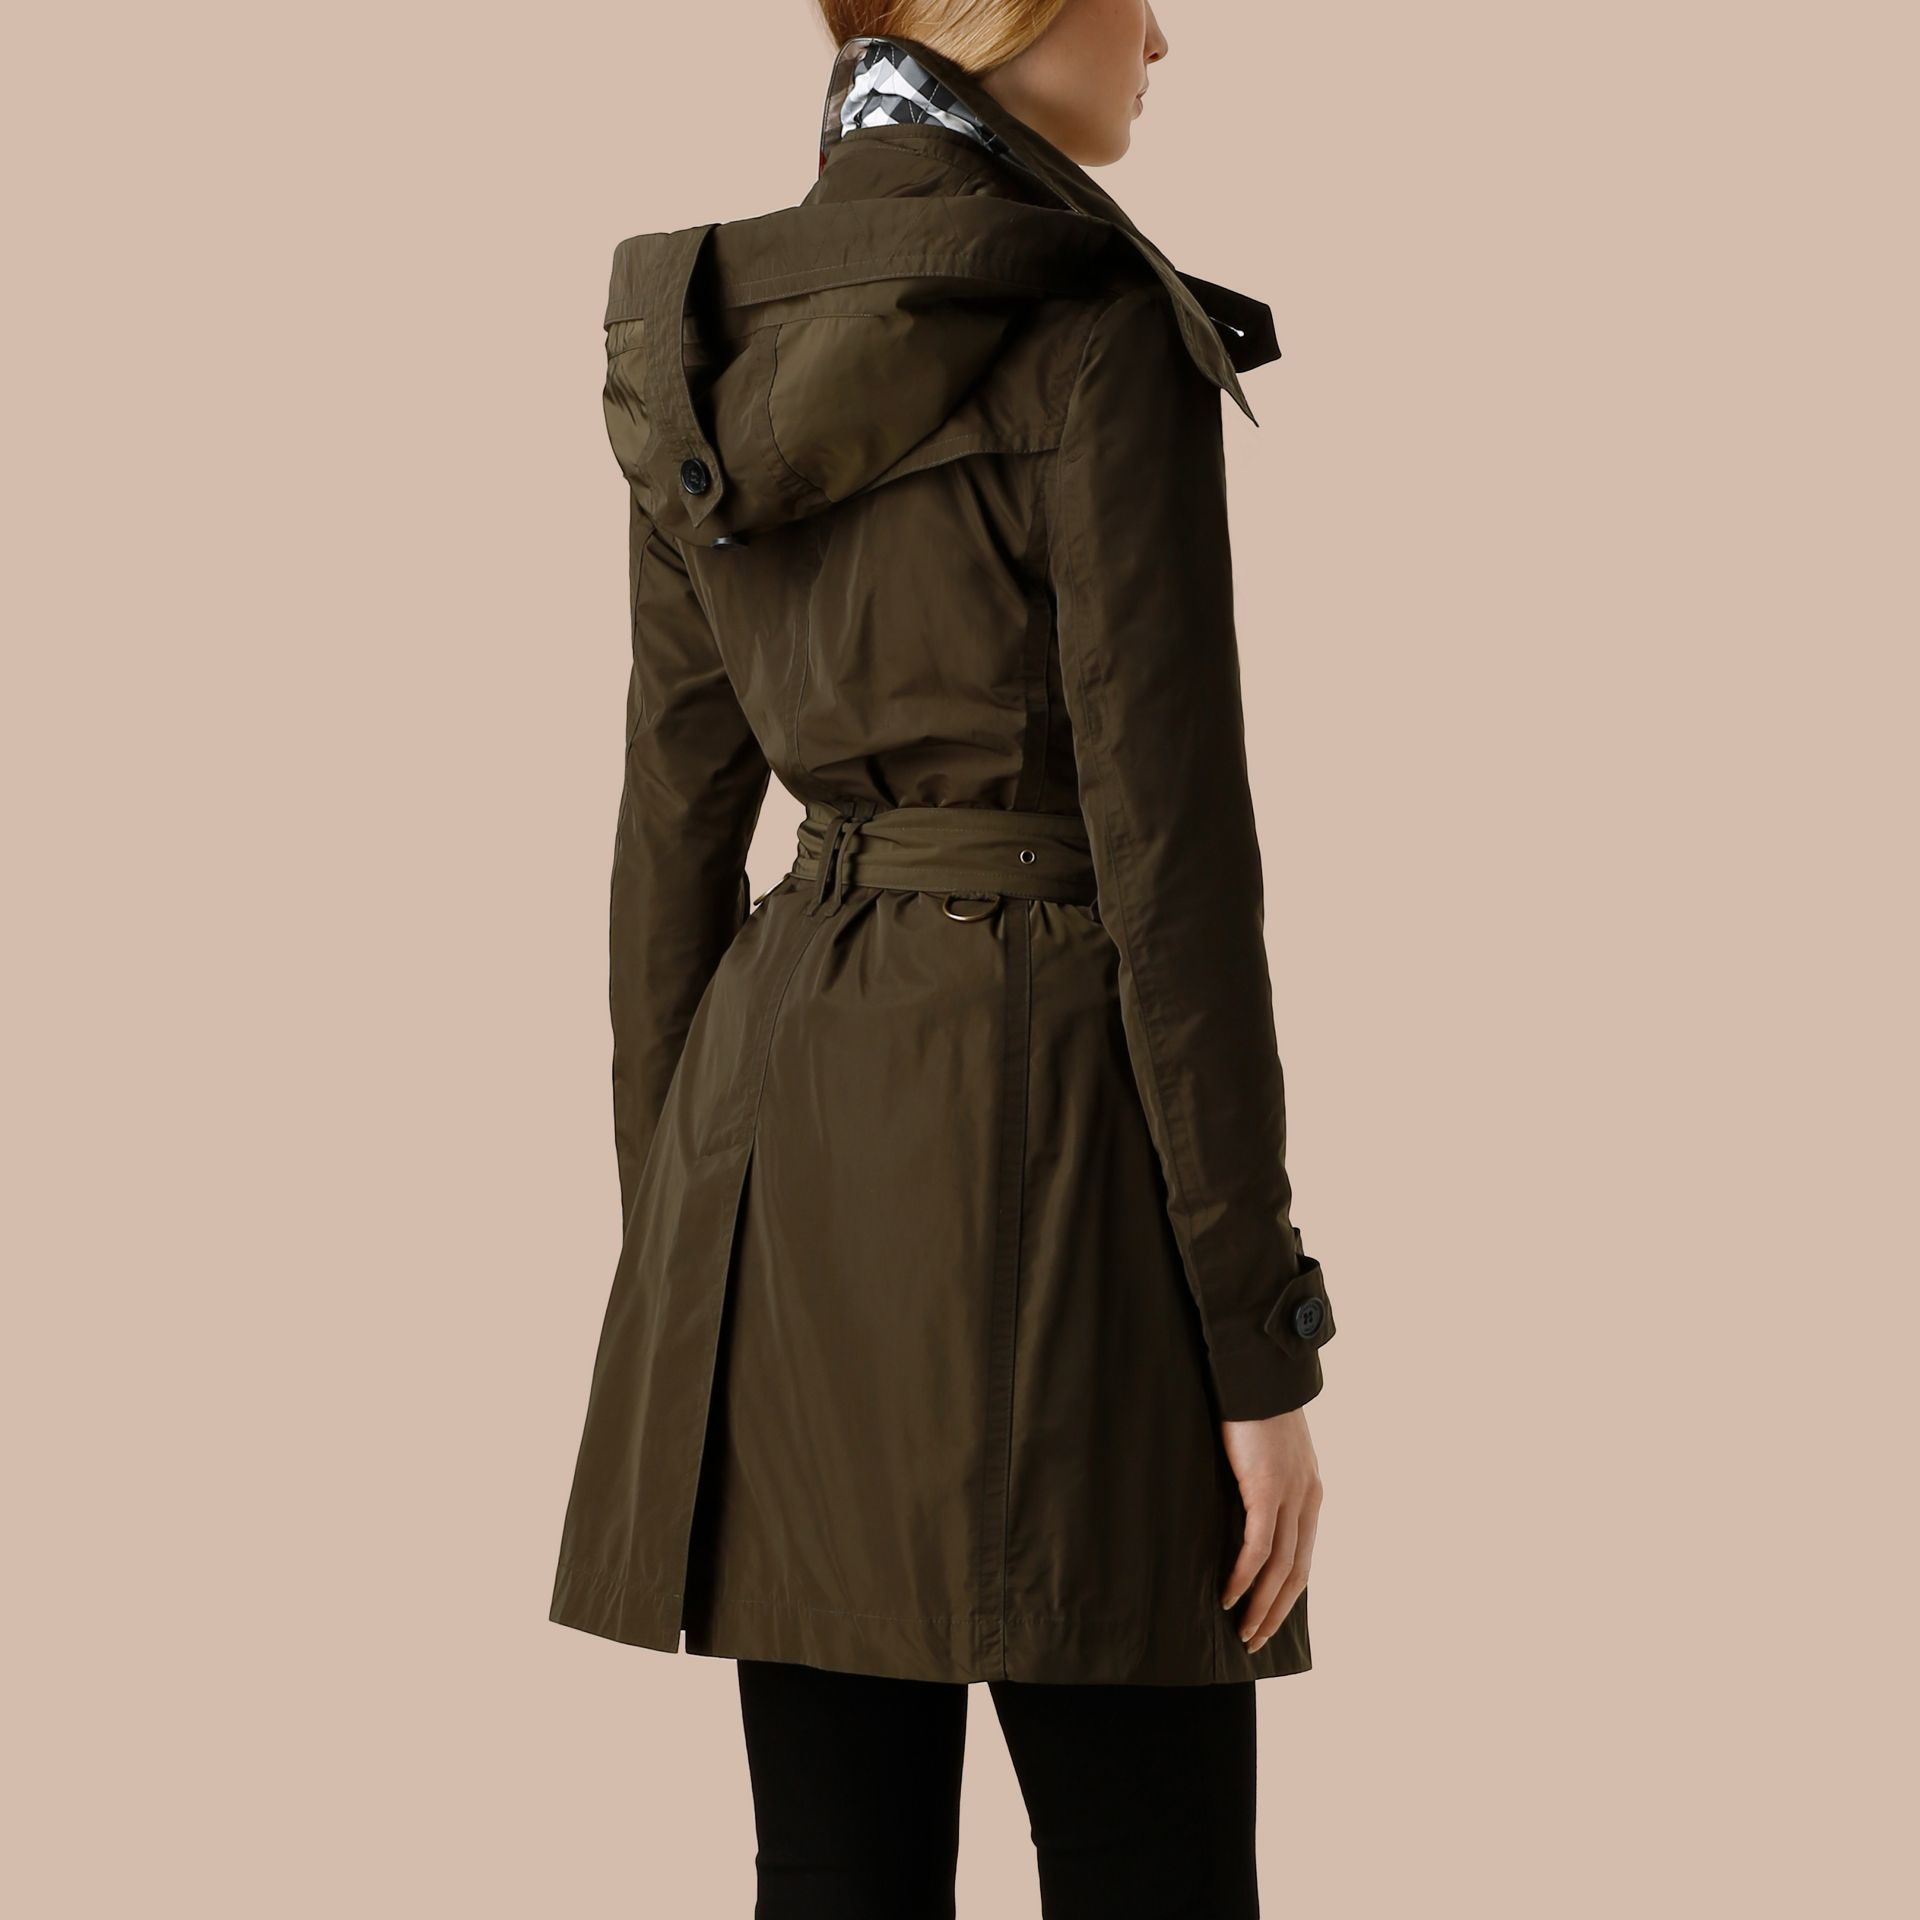 Dark olive Taffeta Trench Coat with Detachable Hood Dark Olive - gallery image 3